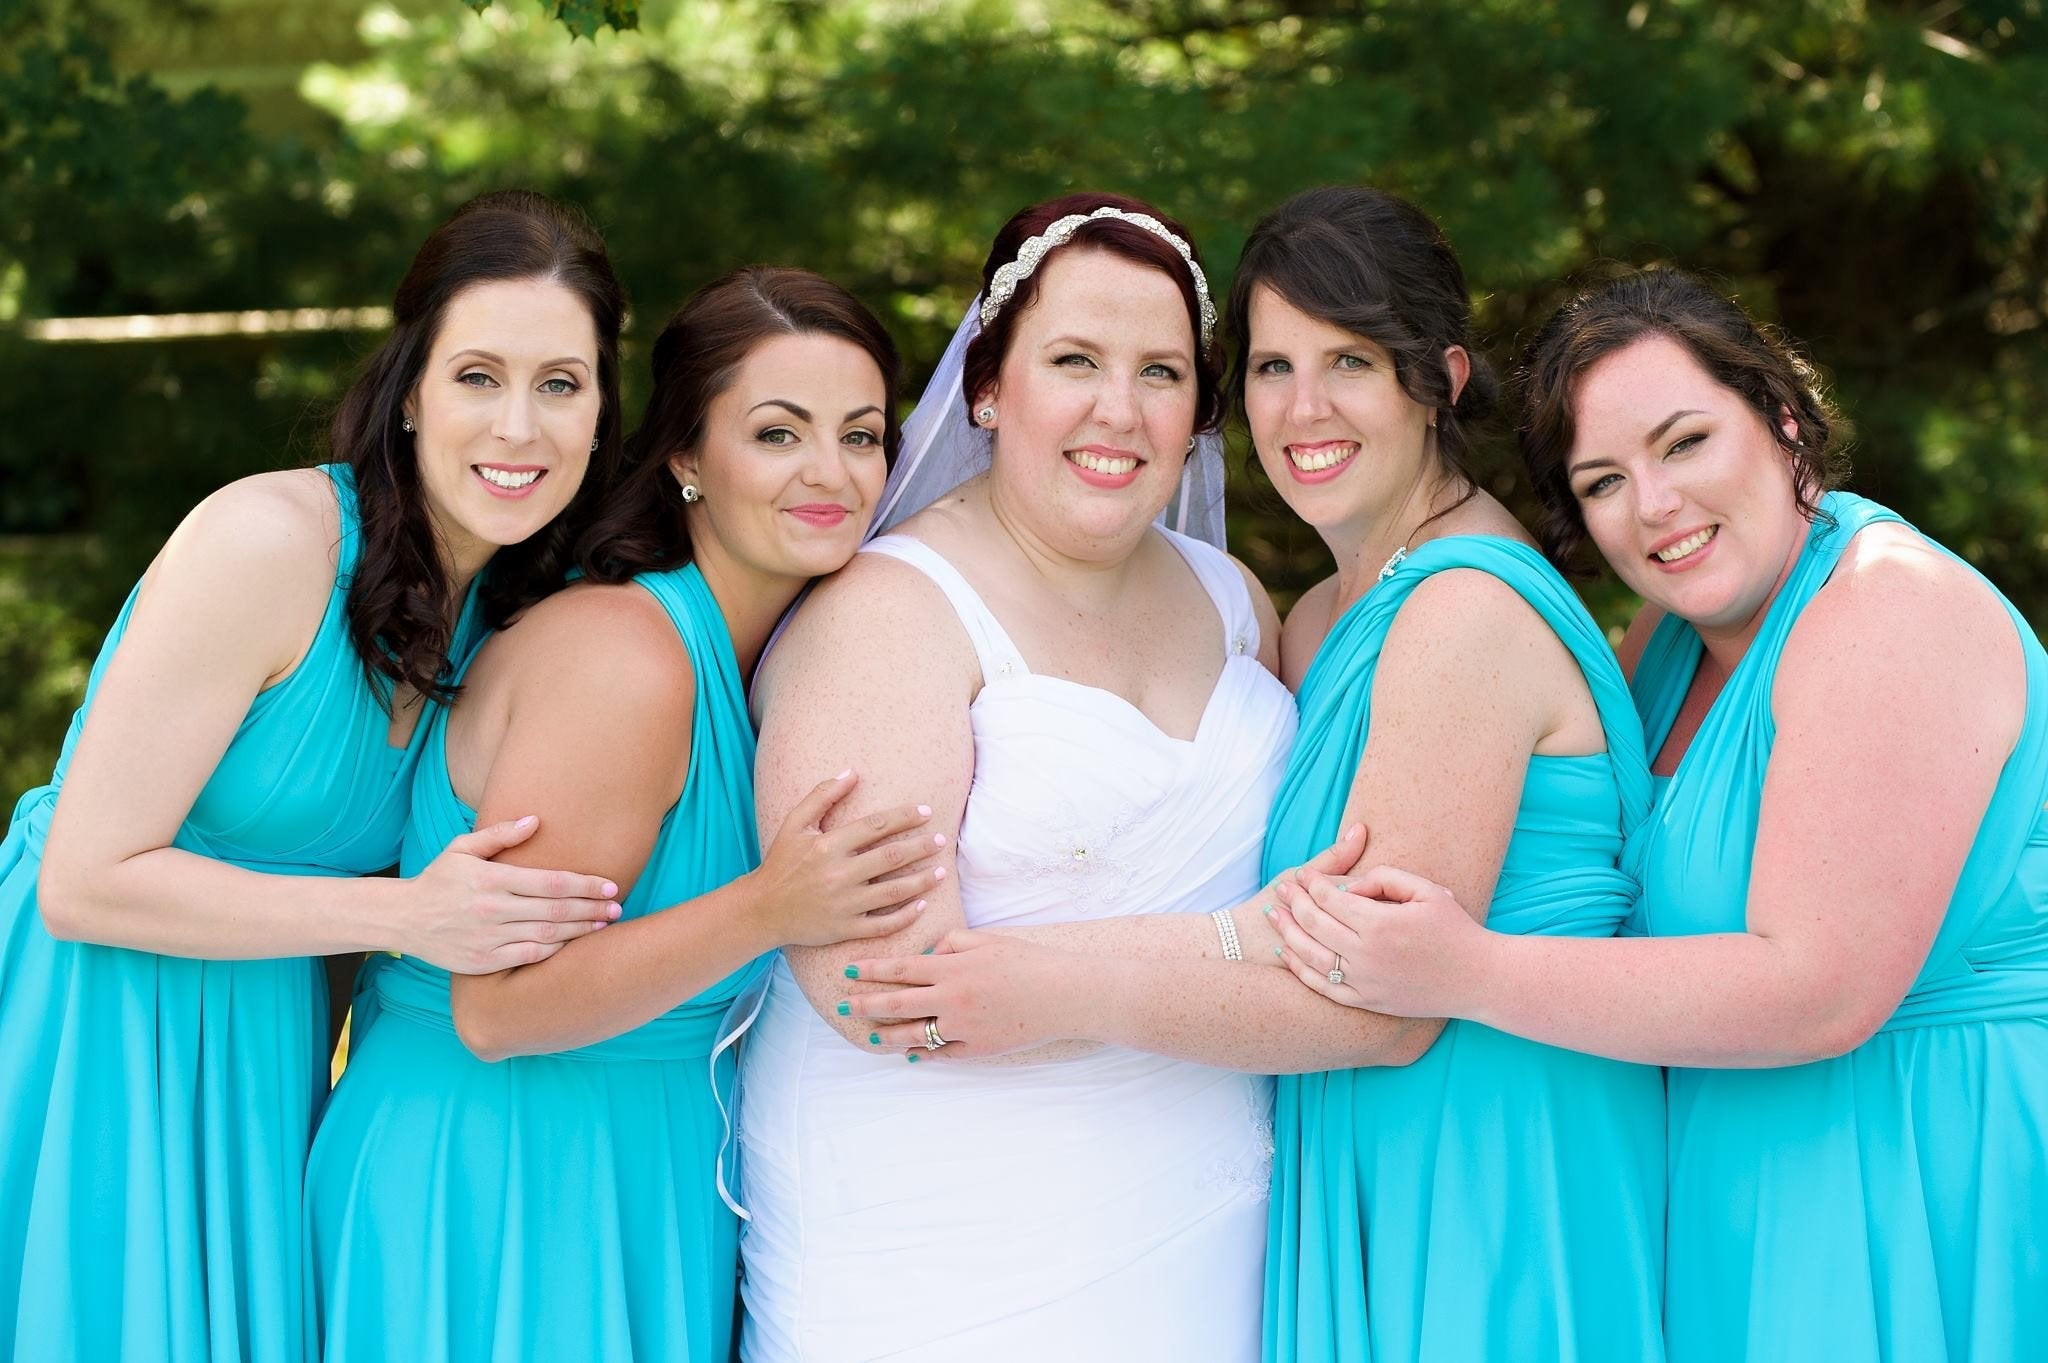 Teal Convertible Dress/Custom Size & Length/Plus Size & Maternity Included